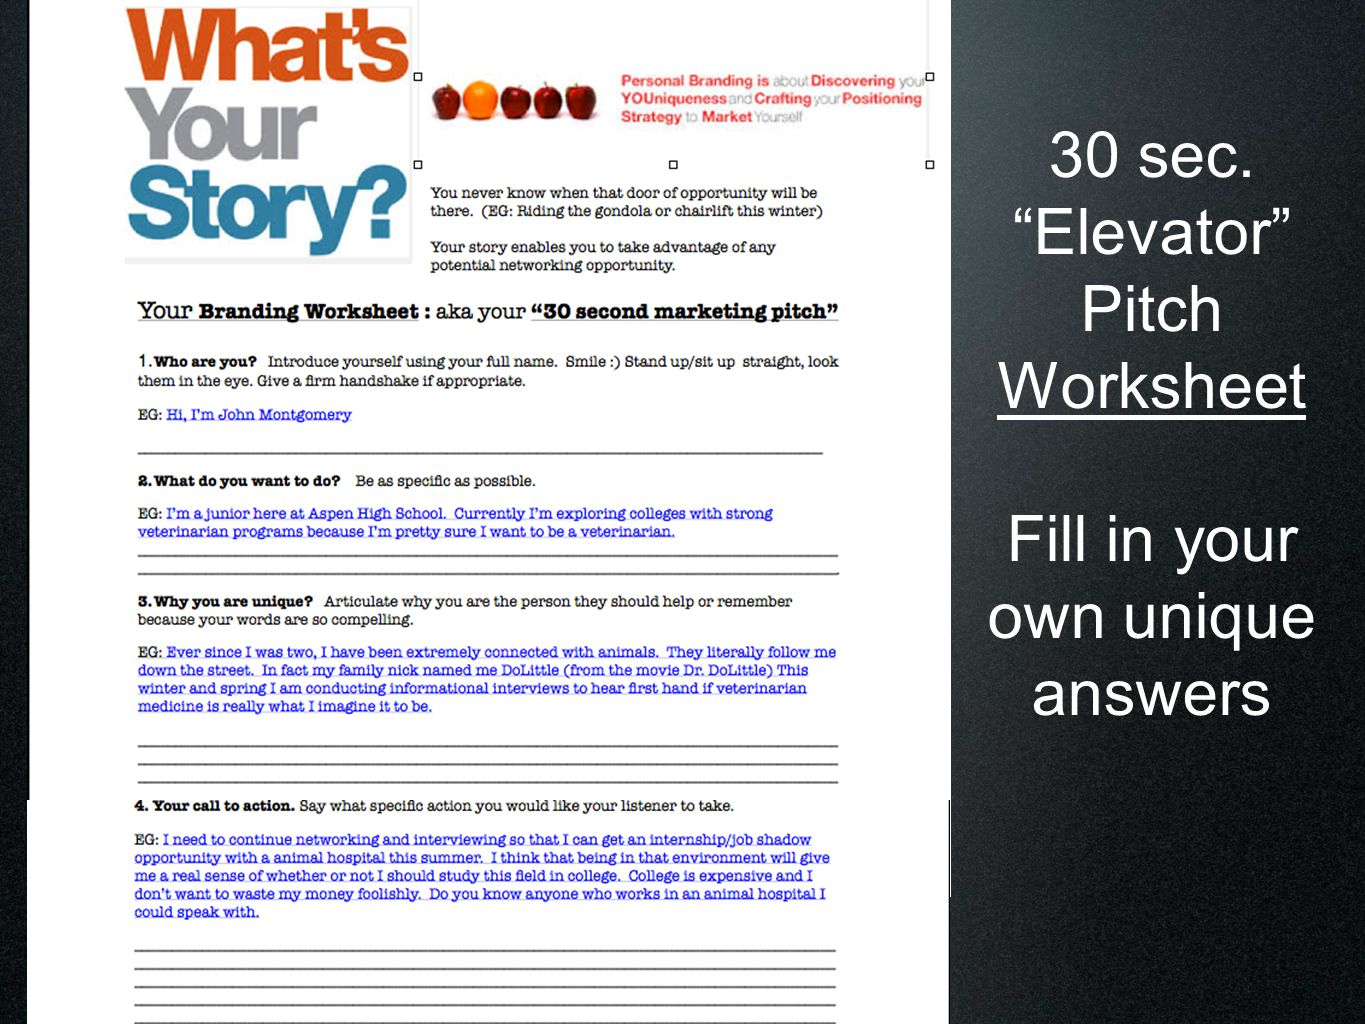 30 sec elevator pitch examples